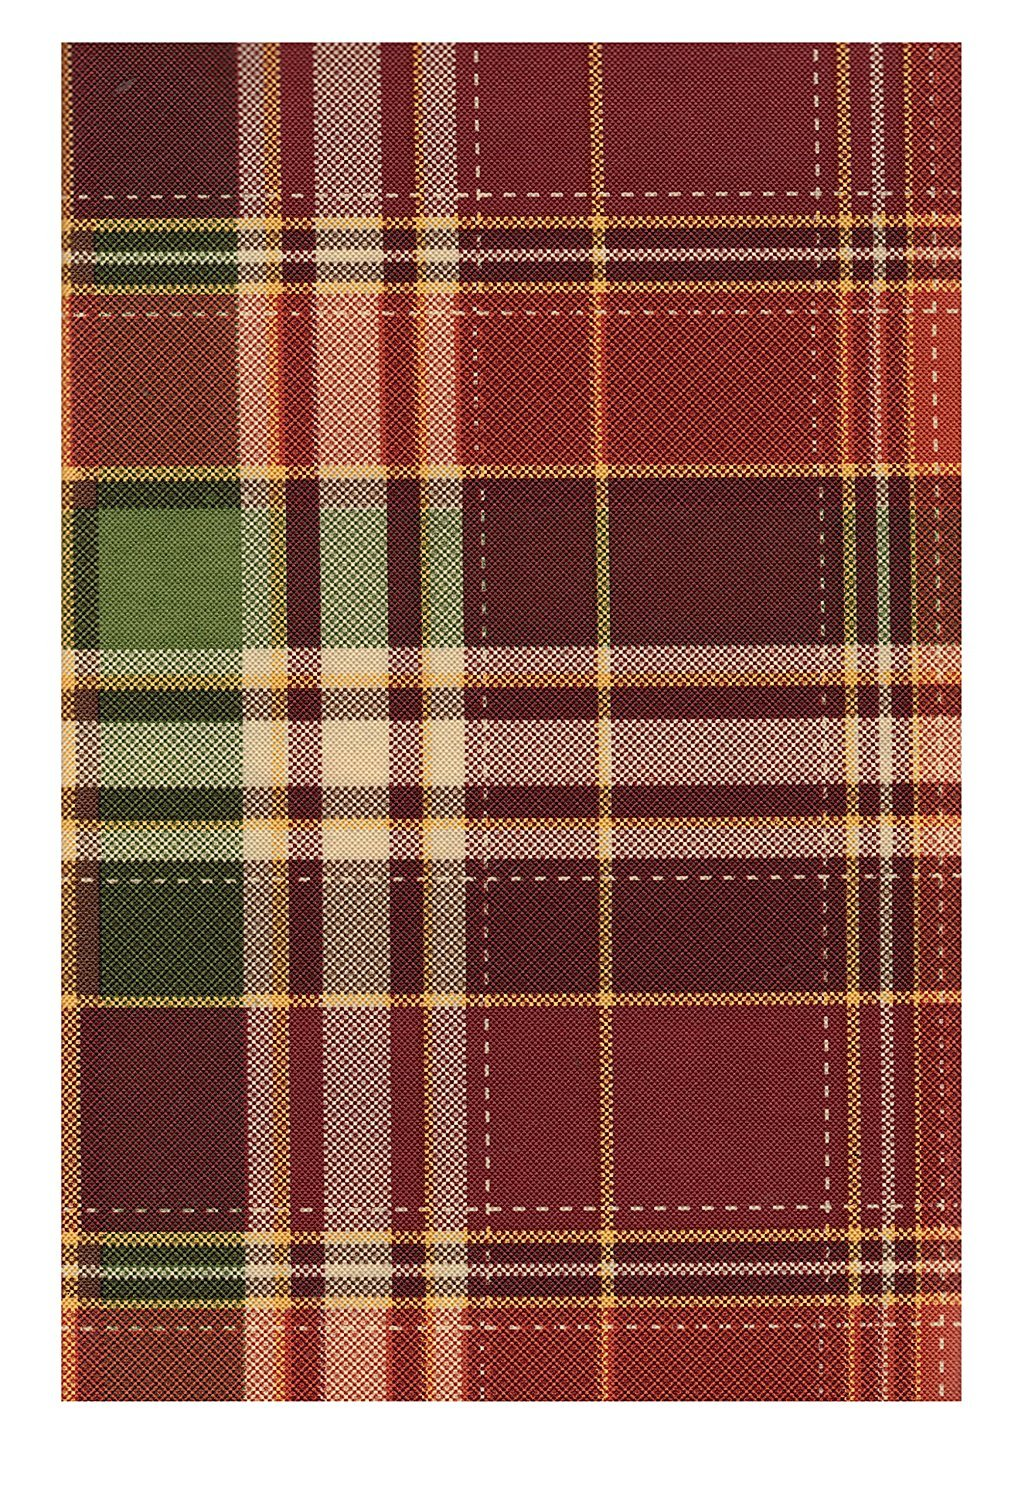 harvest plaid autumn peva vinyl tablecloth flannel round accent backed home kitchen low coffee table with drawers distressed wood holiday runner mosaic tile bistro and chairs very